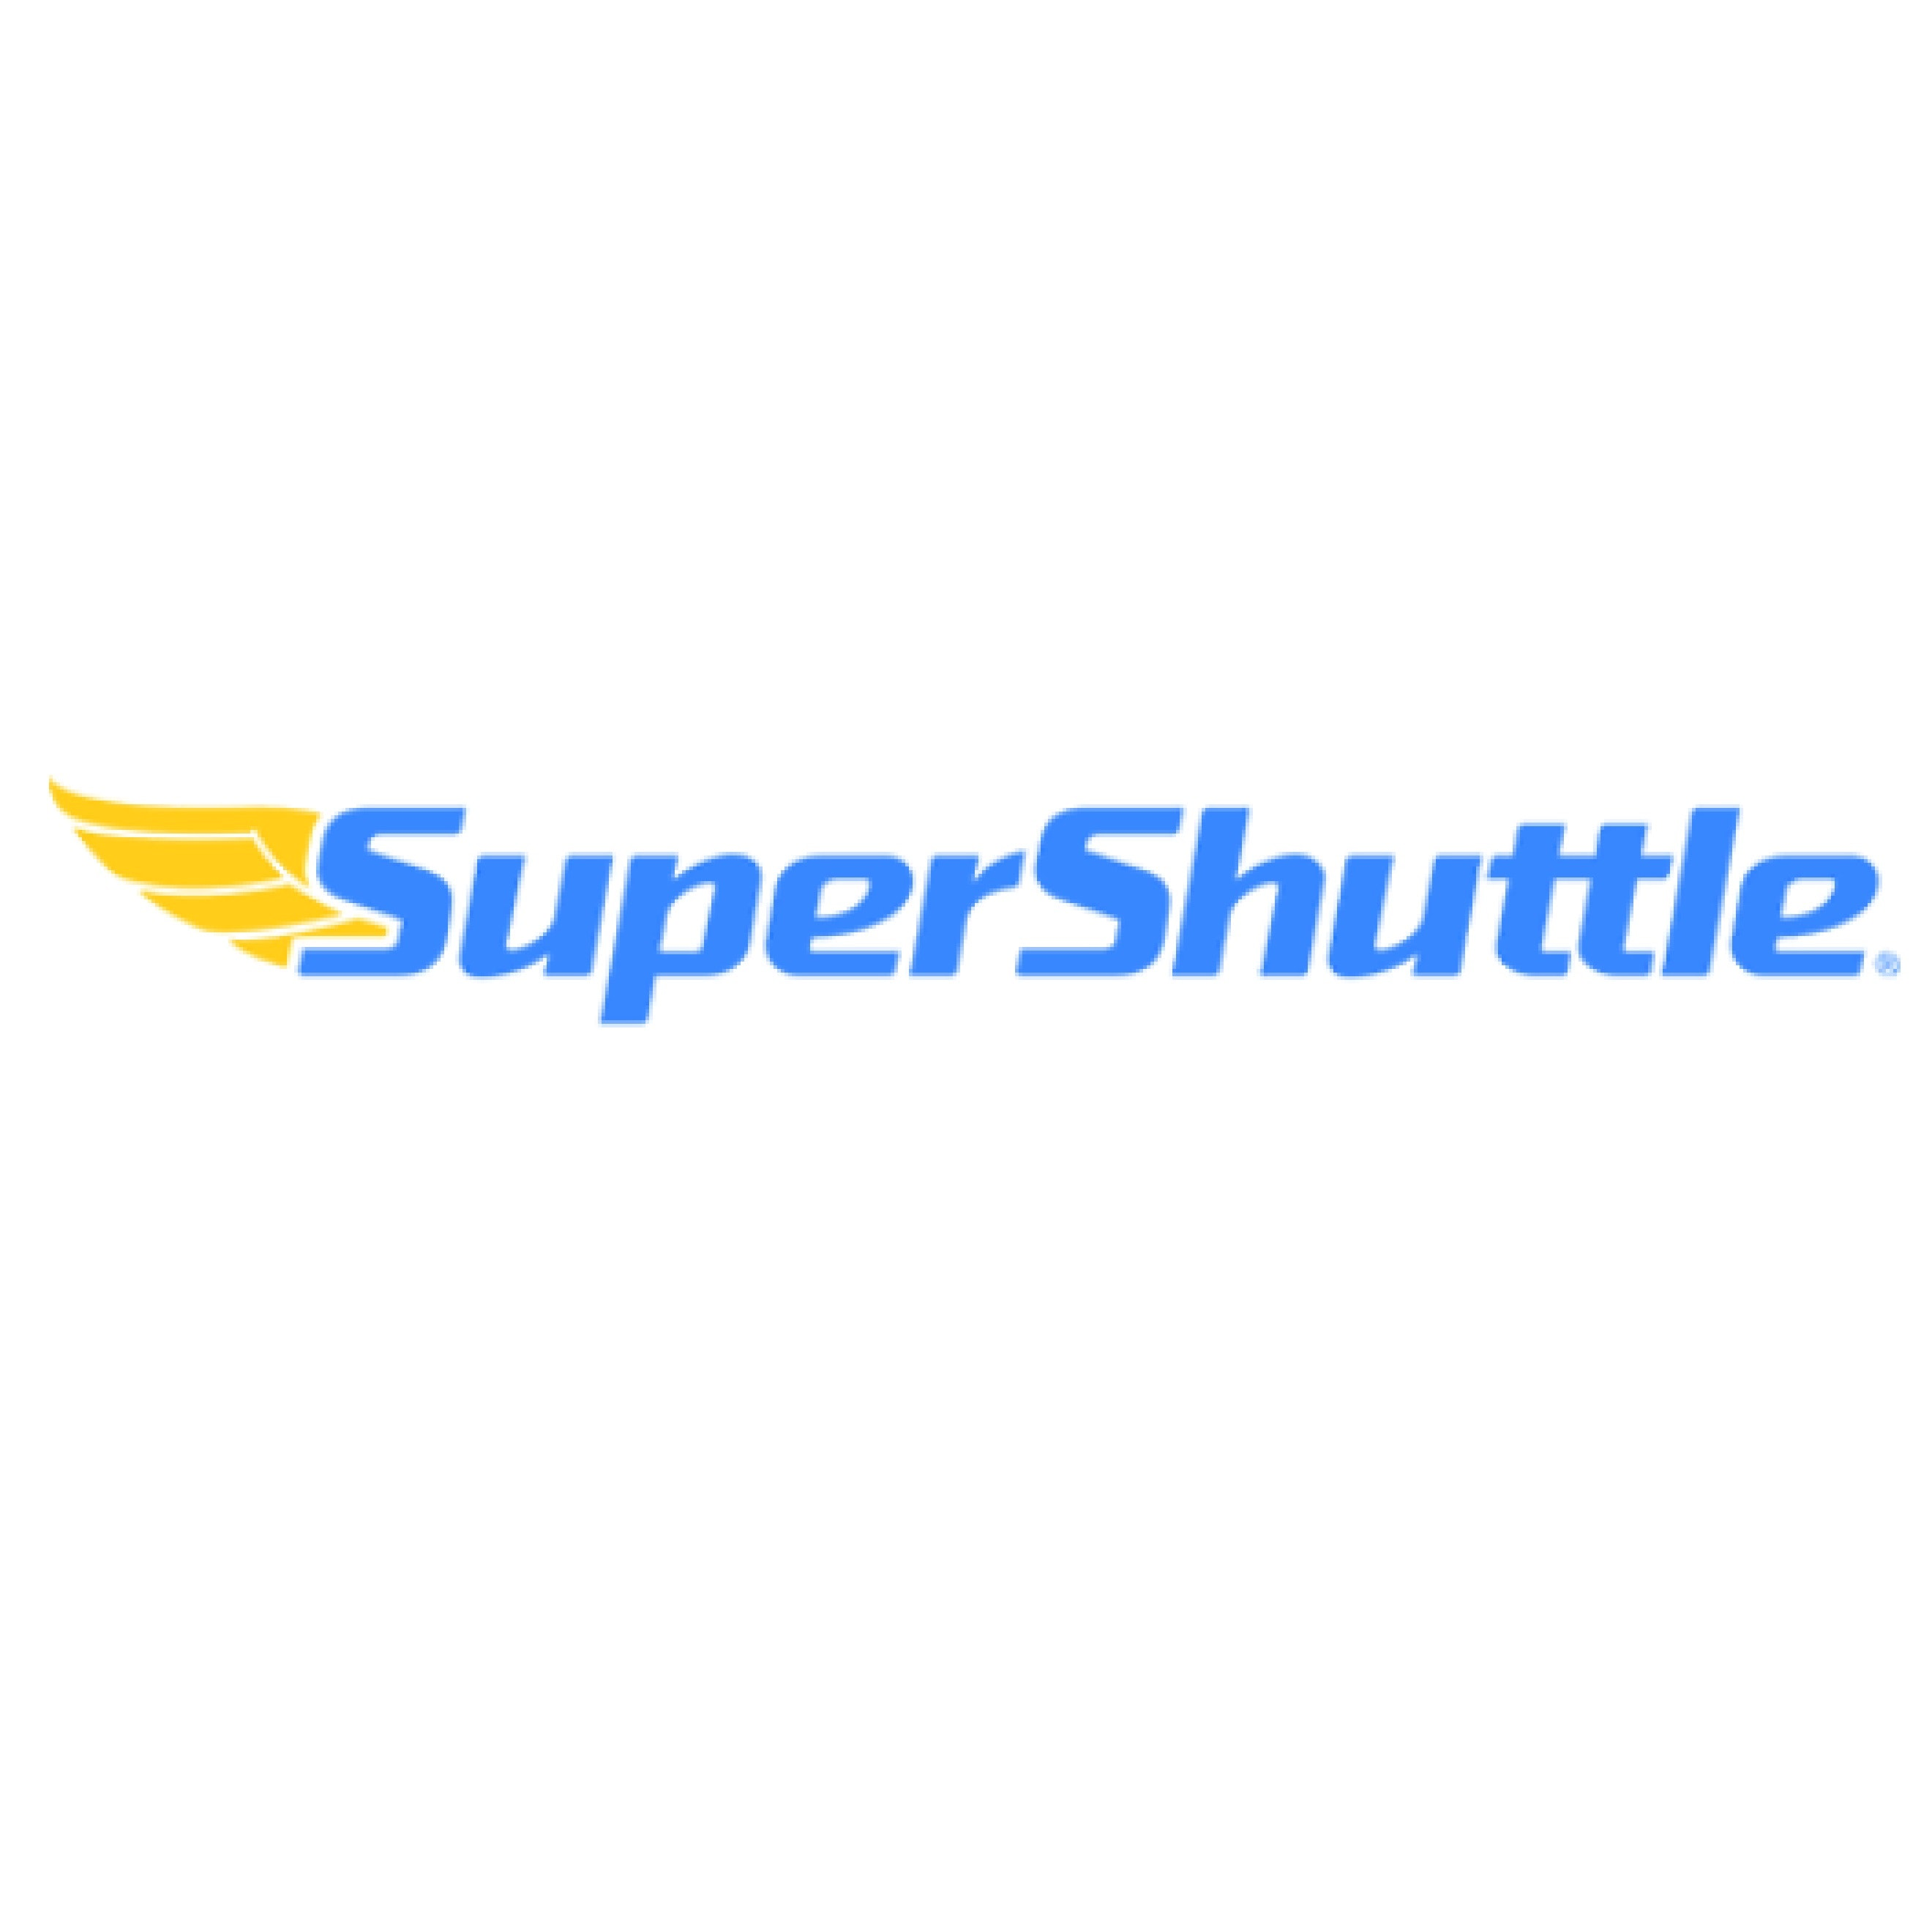 SuperShuttle - Non-Stop Ride logo